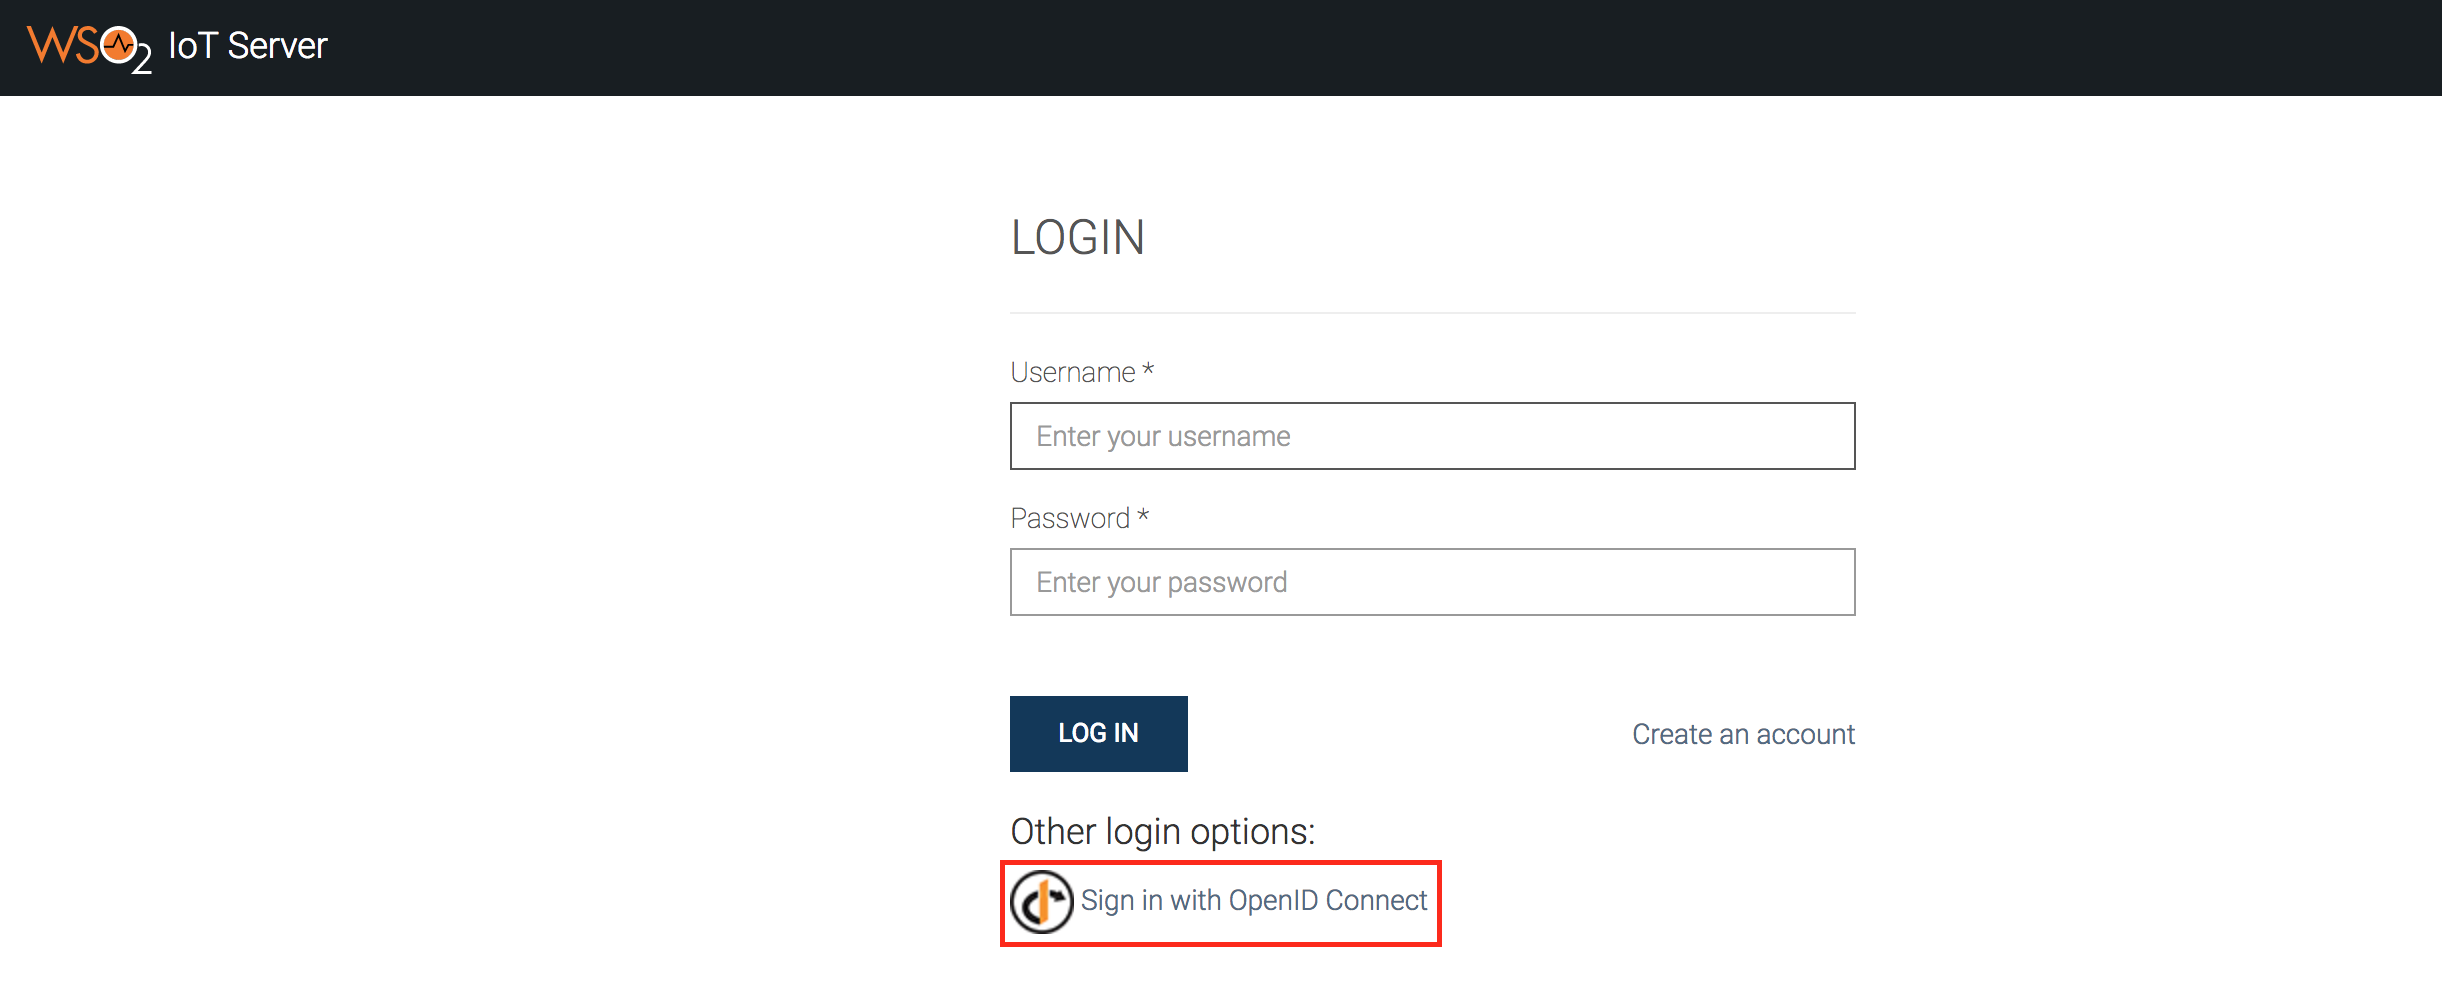 Setting Up A Federated IdP with OpenID Connect - IoT Server 3.2.0 ...